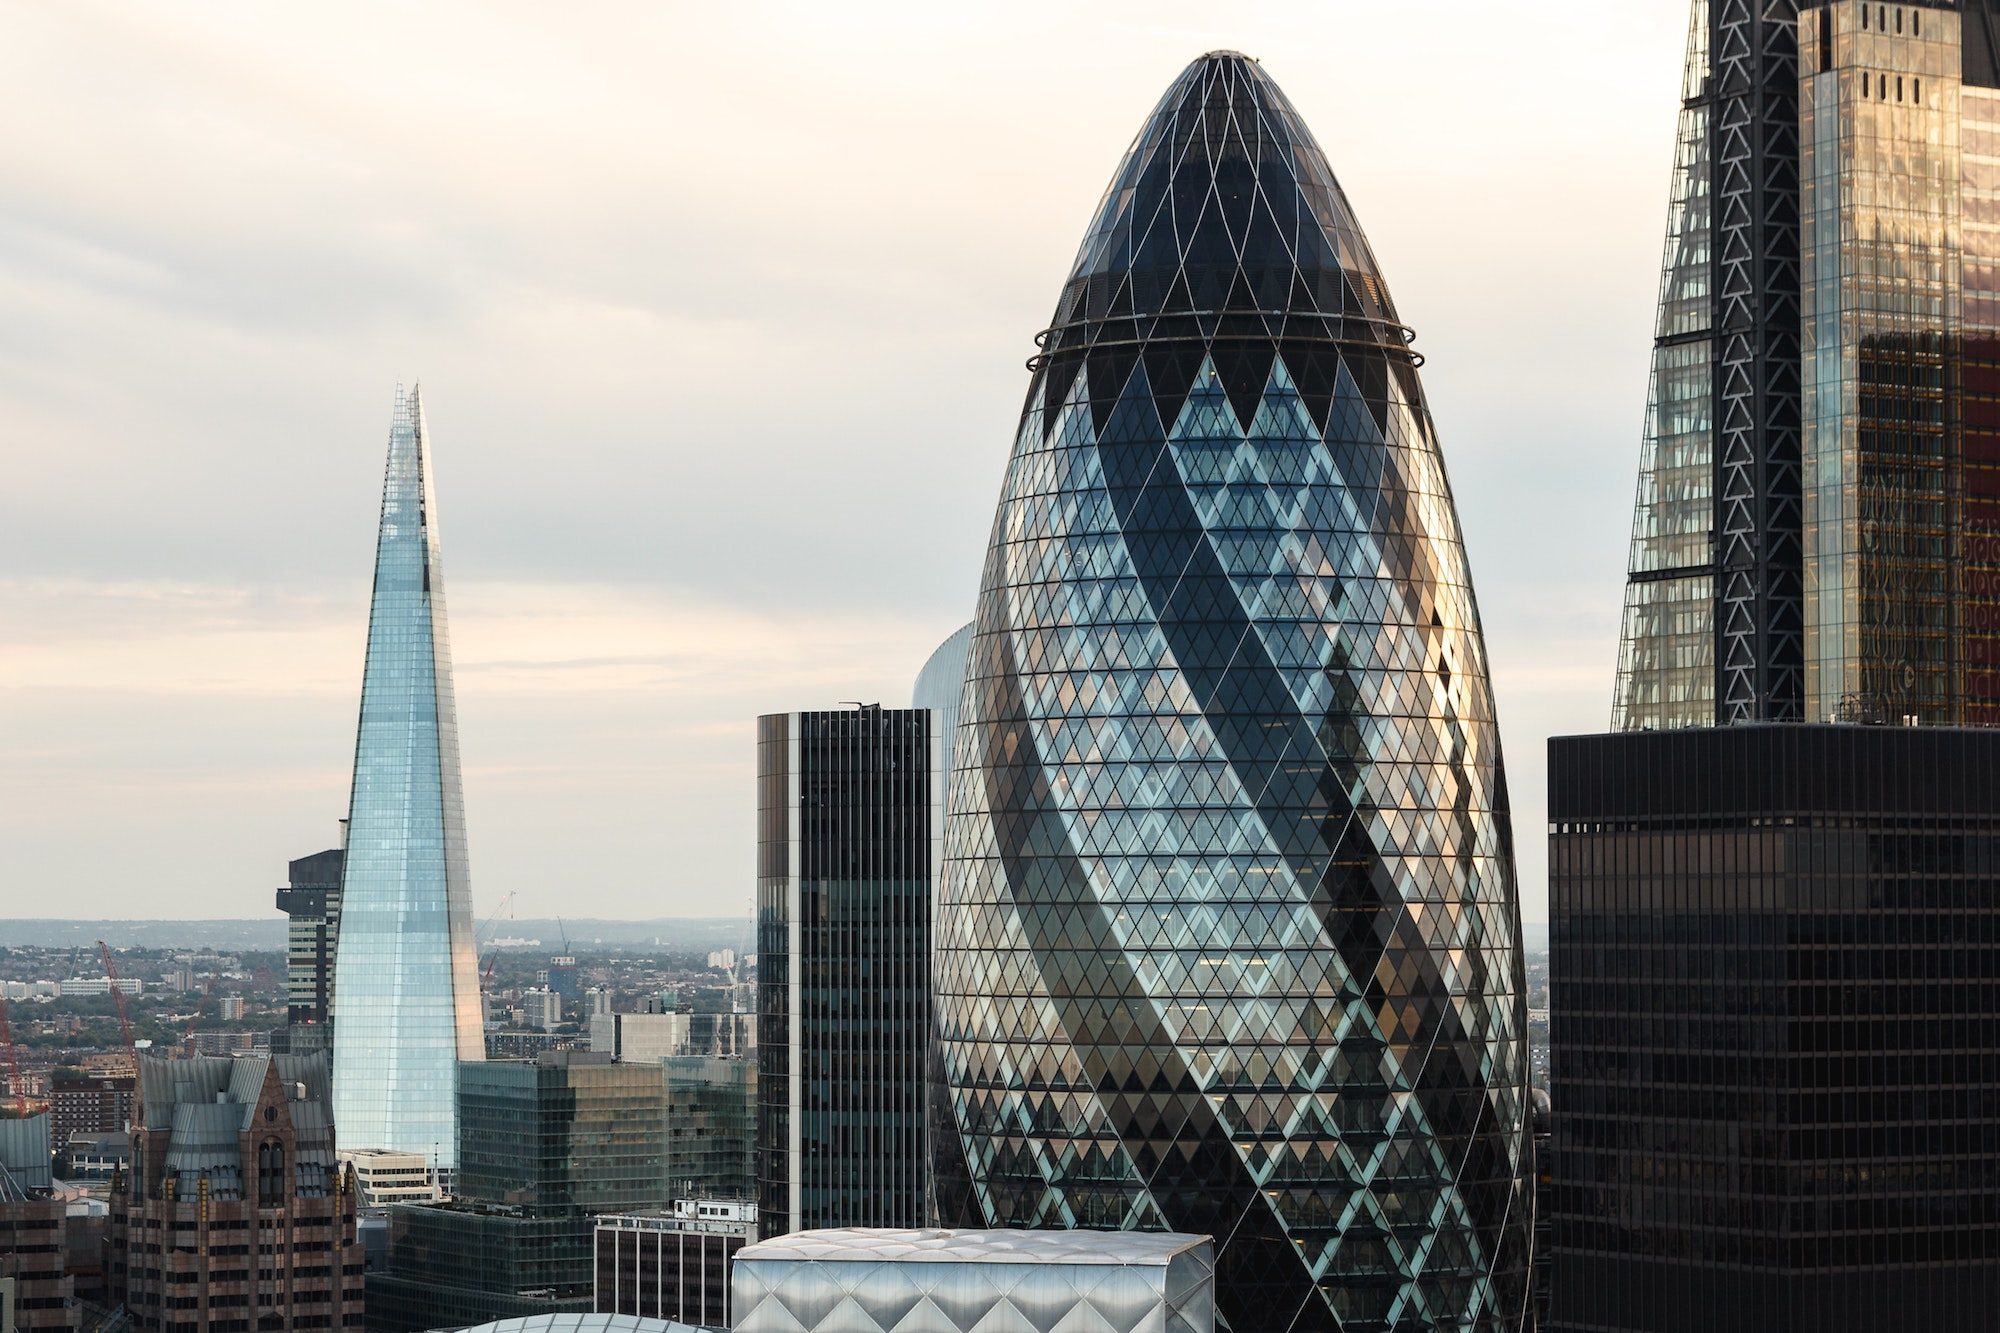 OKRs for enterprise businesses - Deloitte and NatWest Group share their story